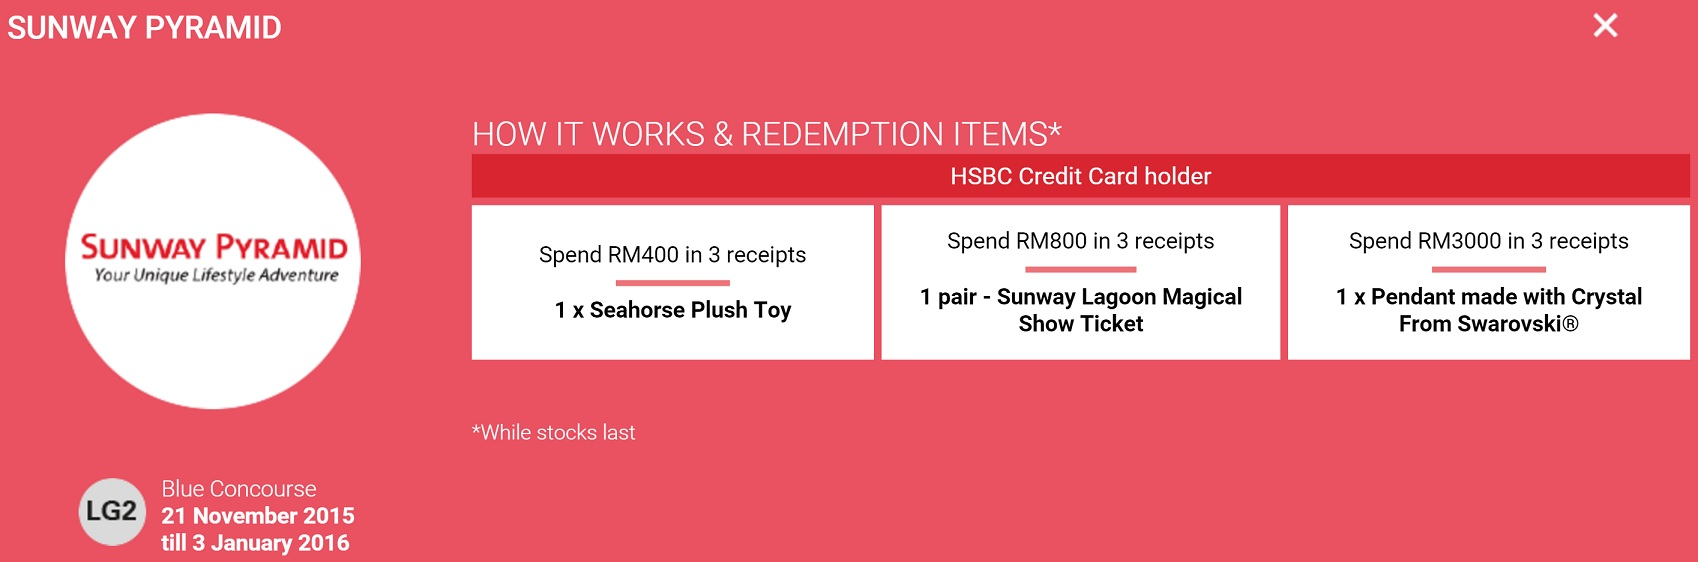 HSBC Credit Card Promotion - HSBC Gift With Purchase at Sunway Pyramid